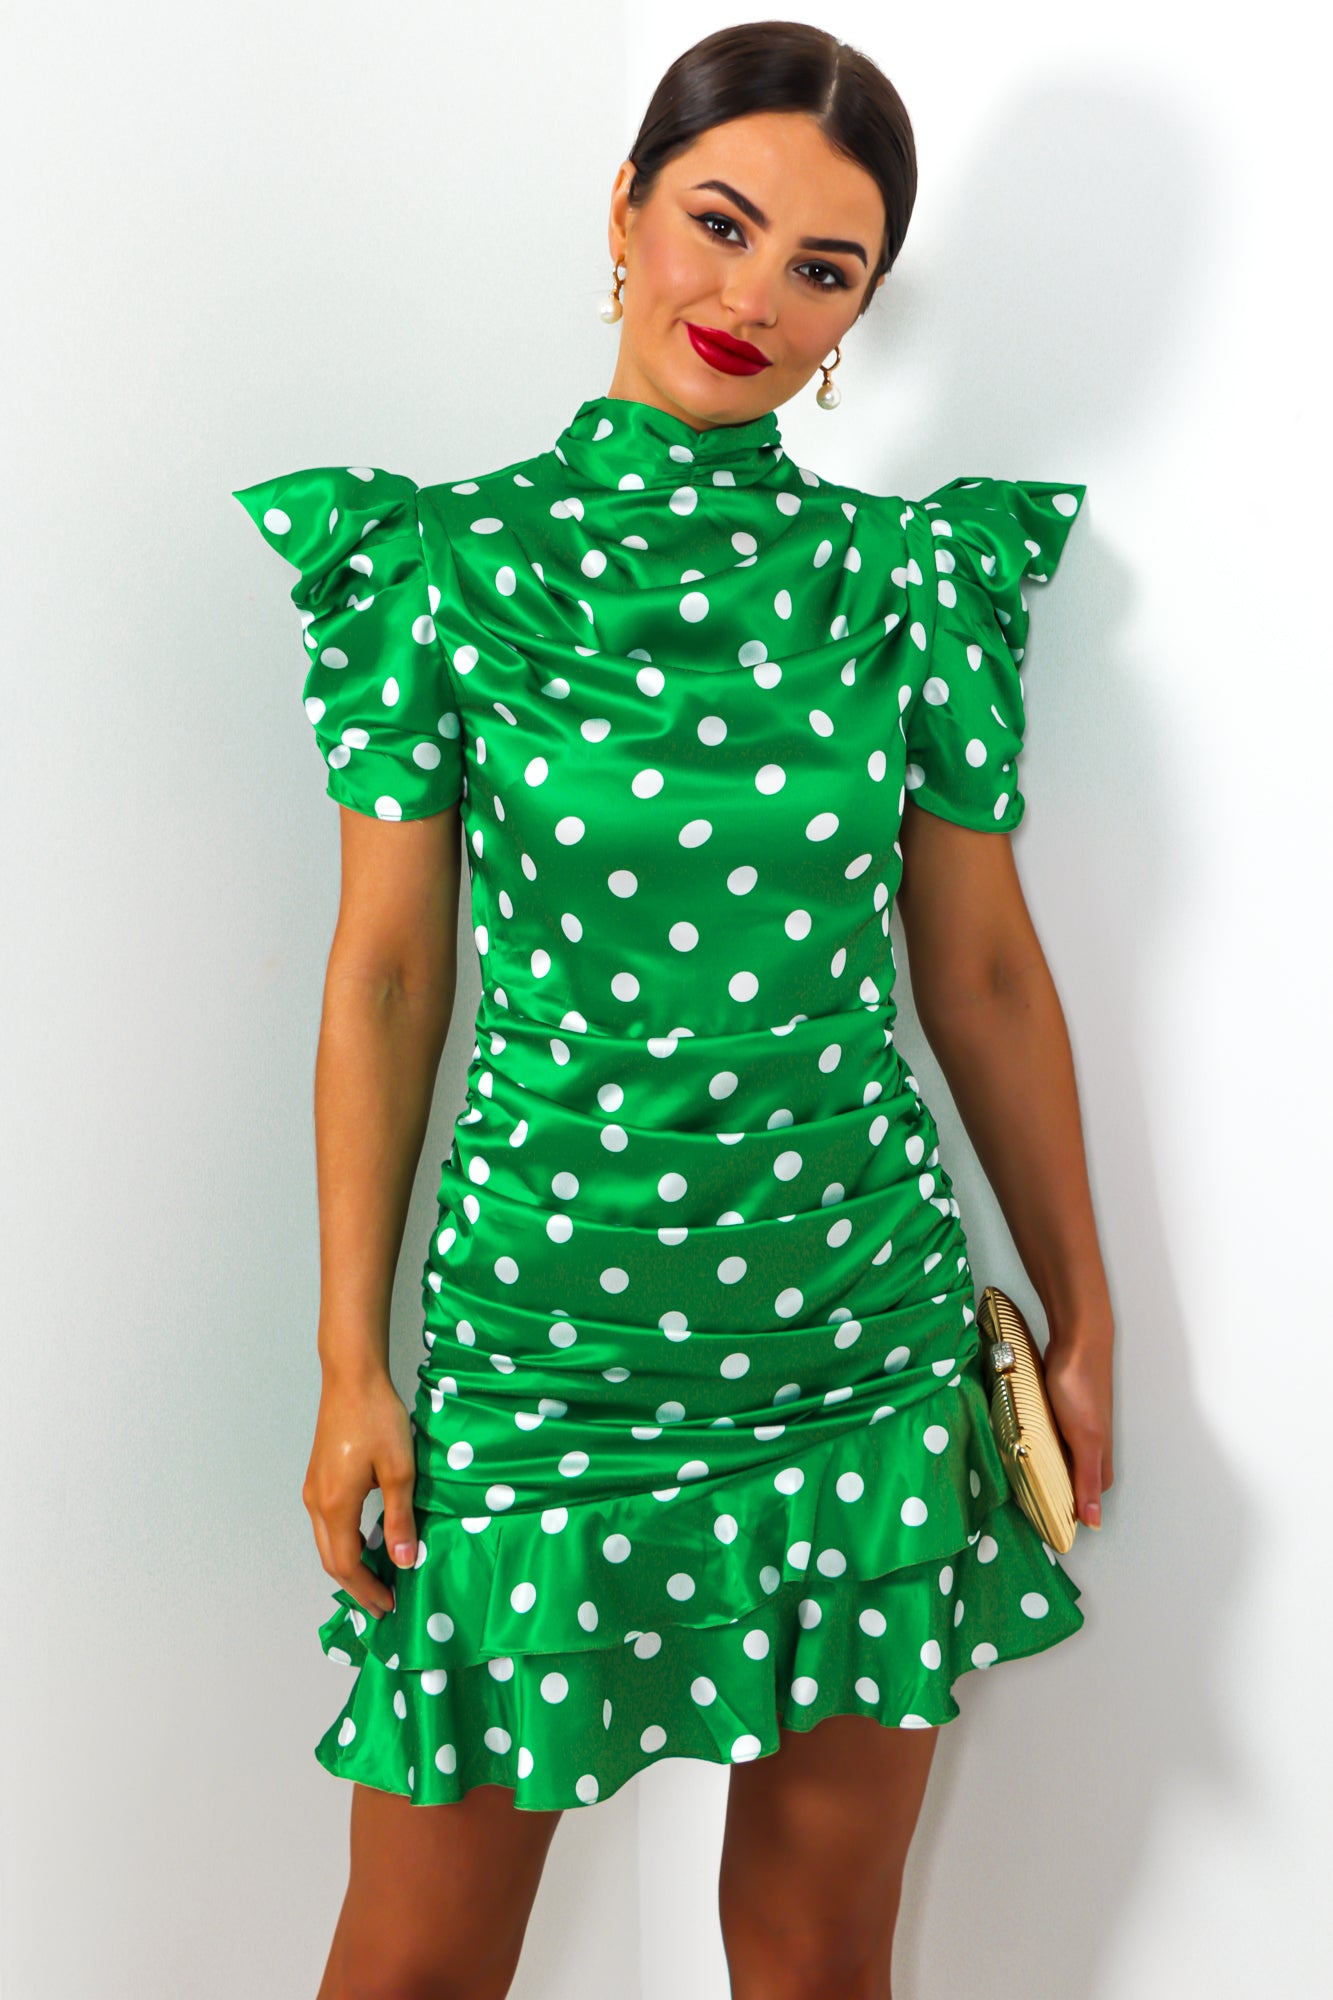 Senorita - Dress In GREEN